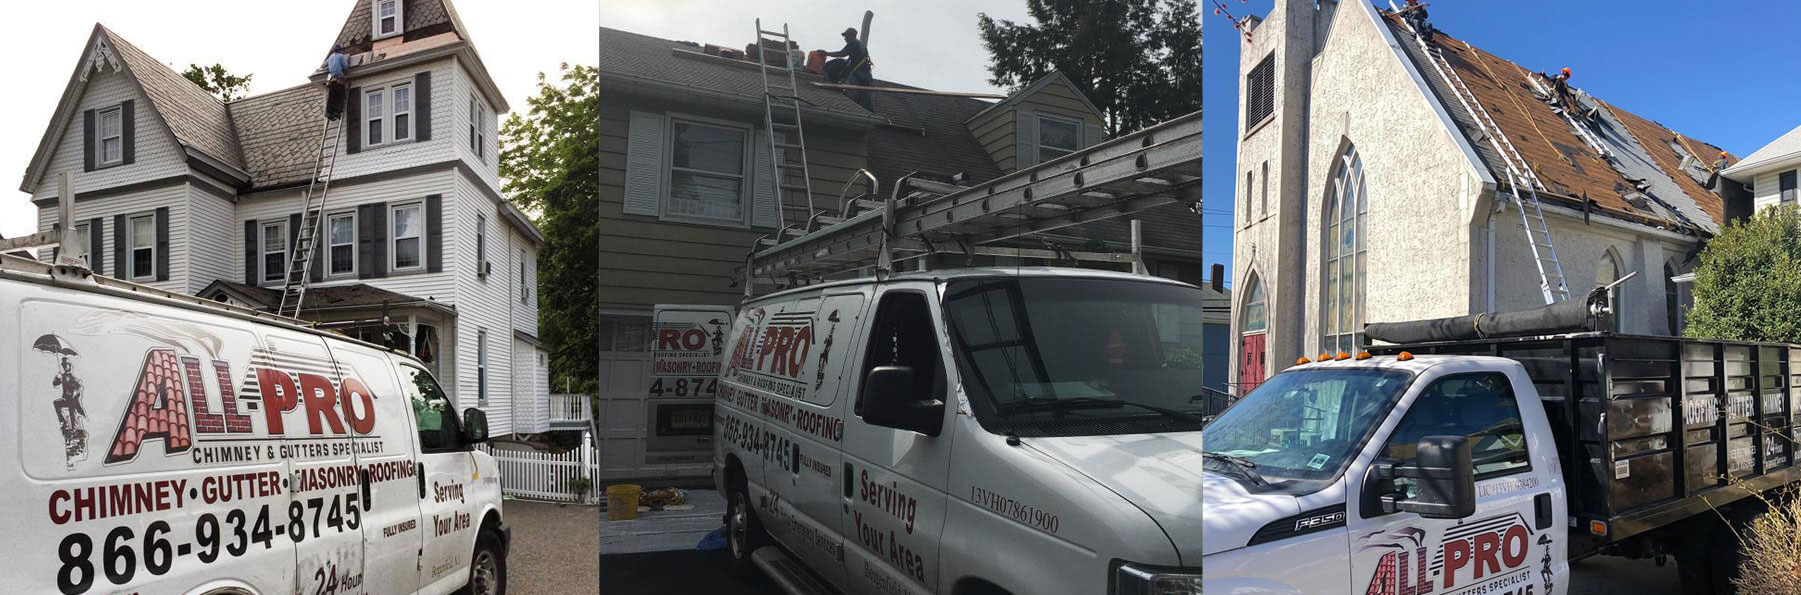 All Pro Roofing and Chimney